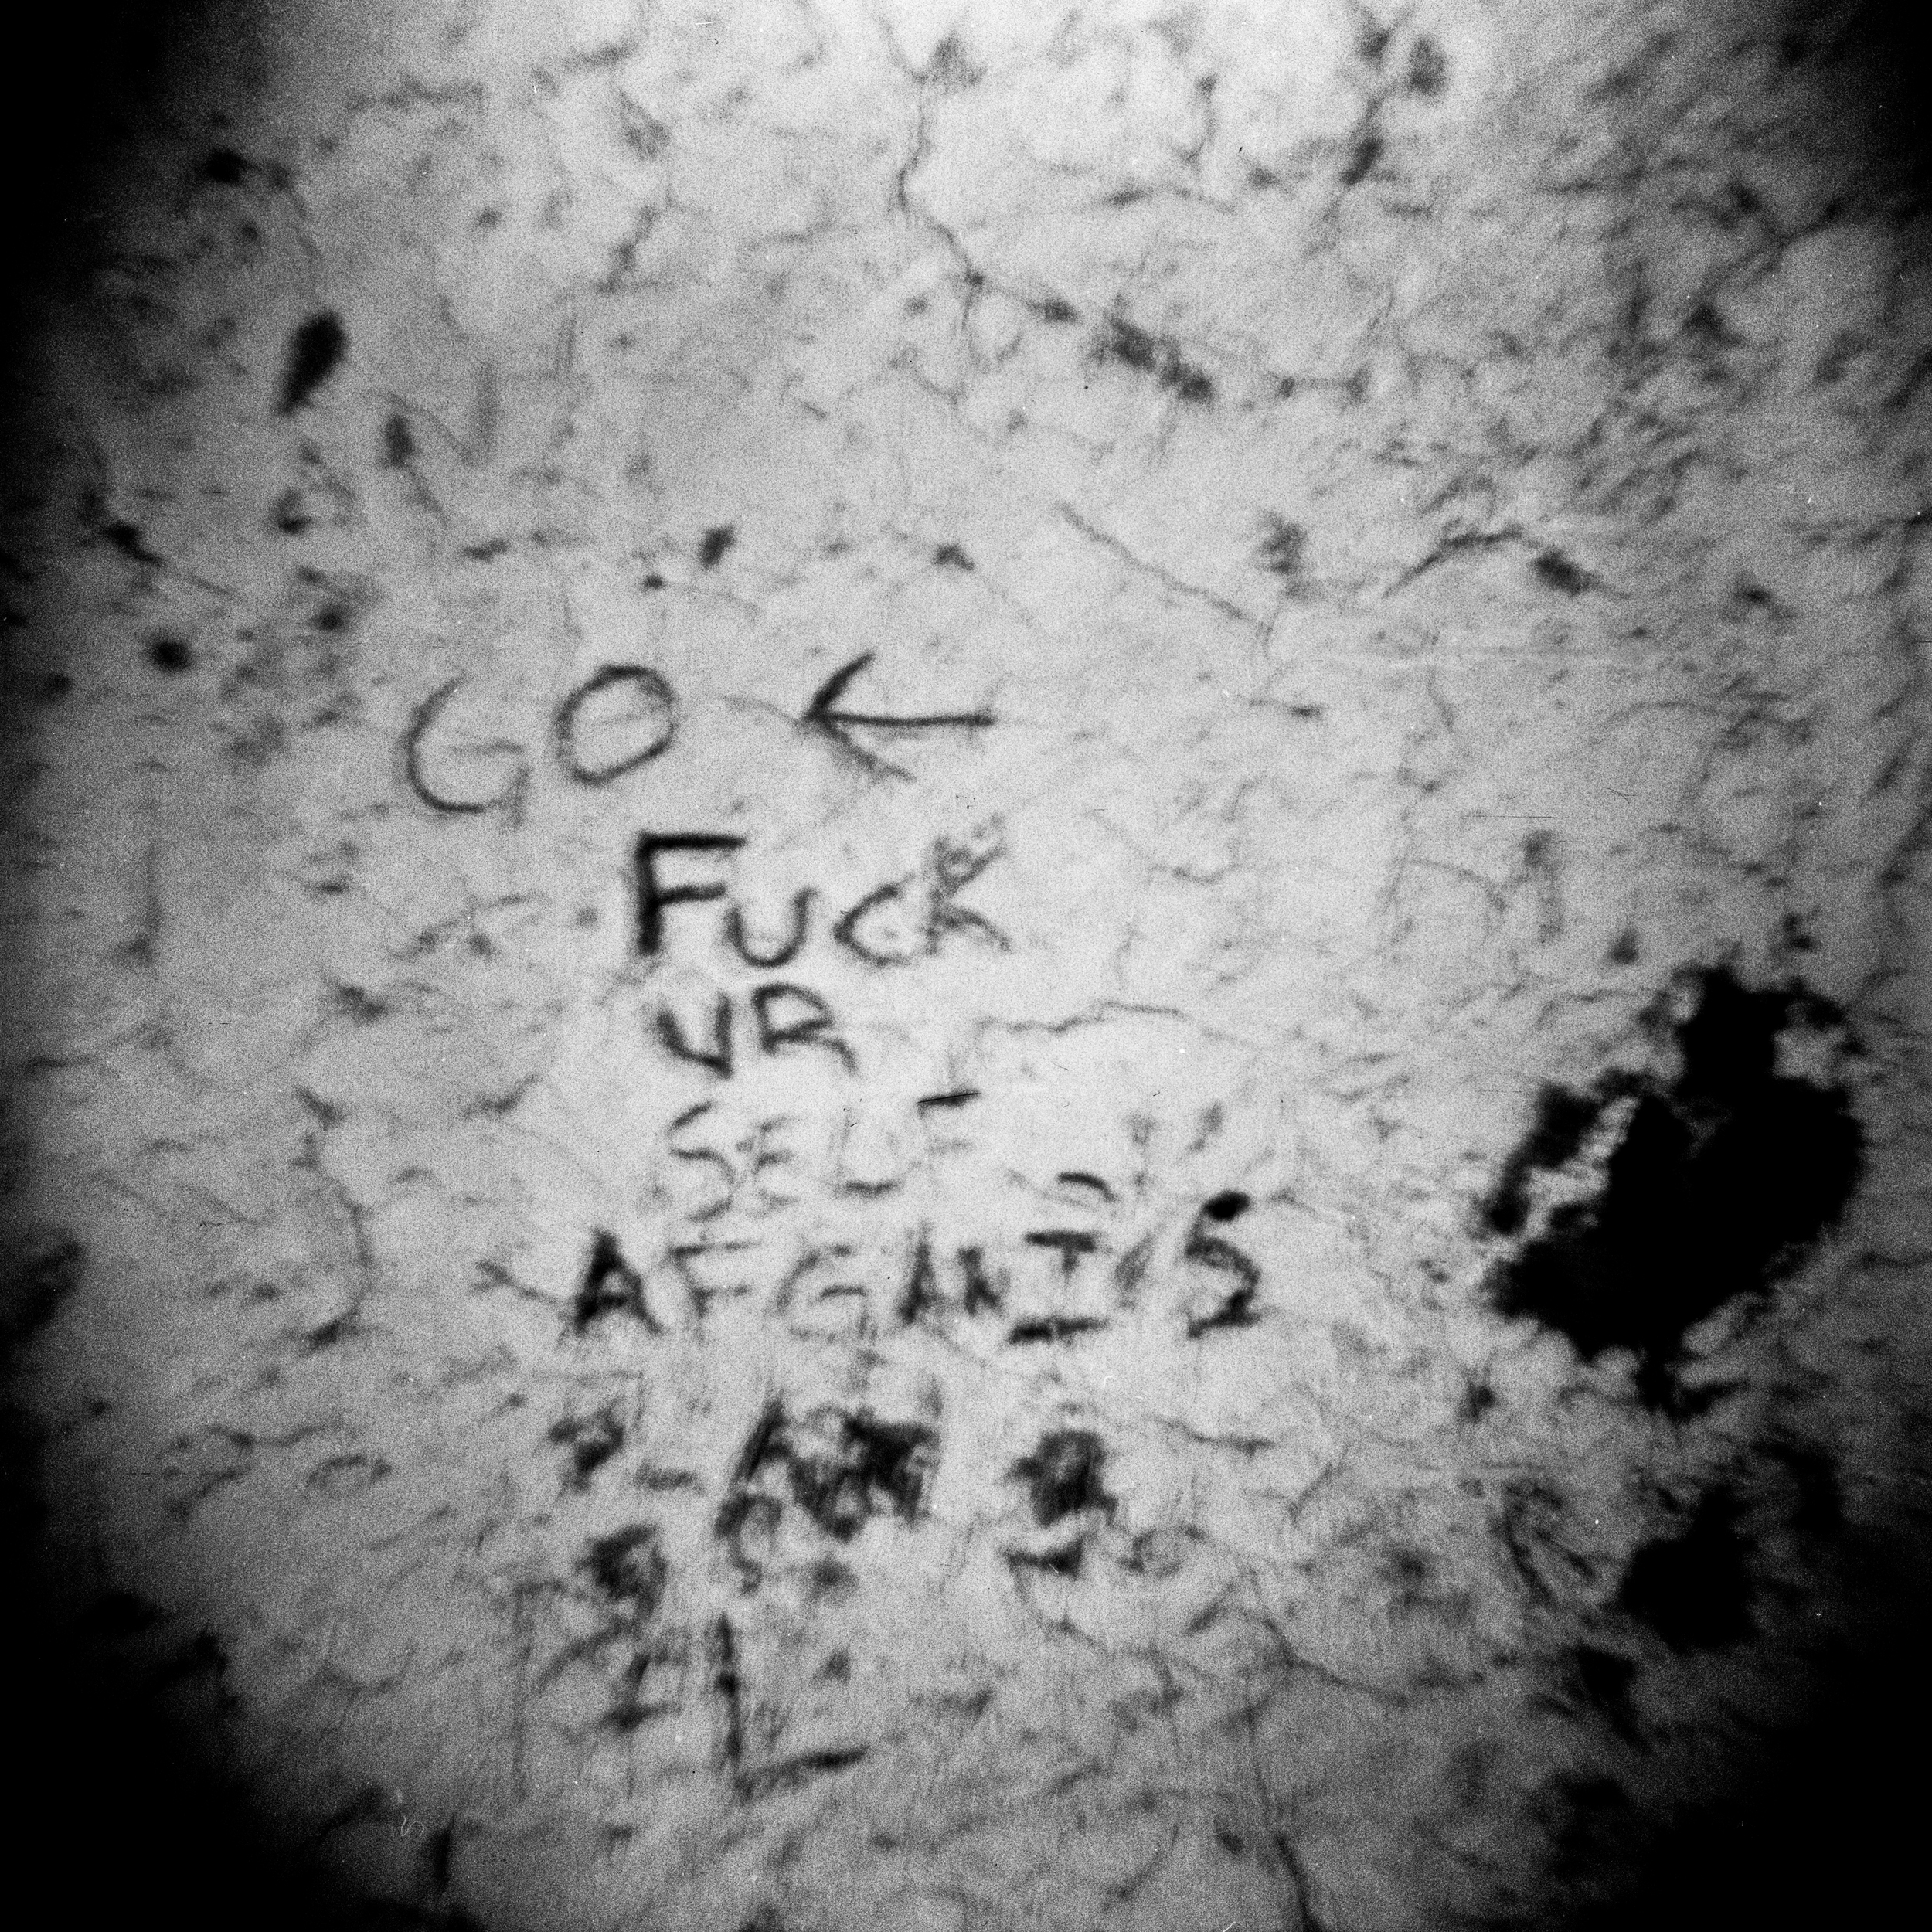 Graffiti scratched in to the side of a dirt wall by a US infantry soldier in Wardack Province, Afghanistan.